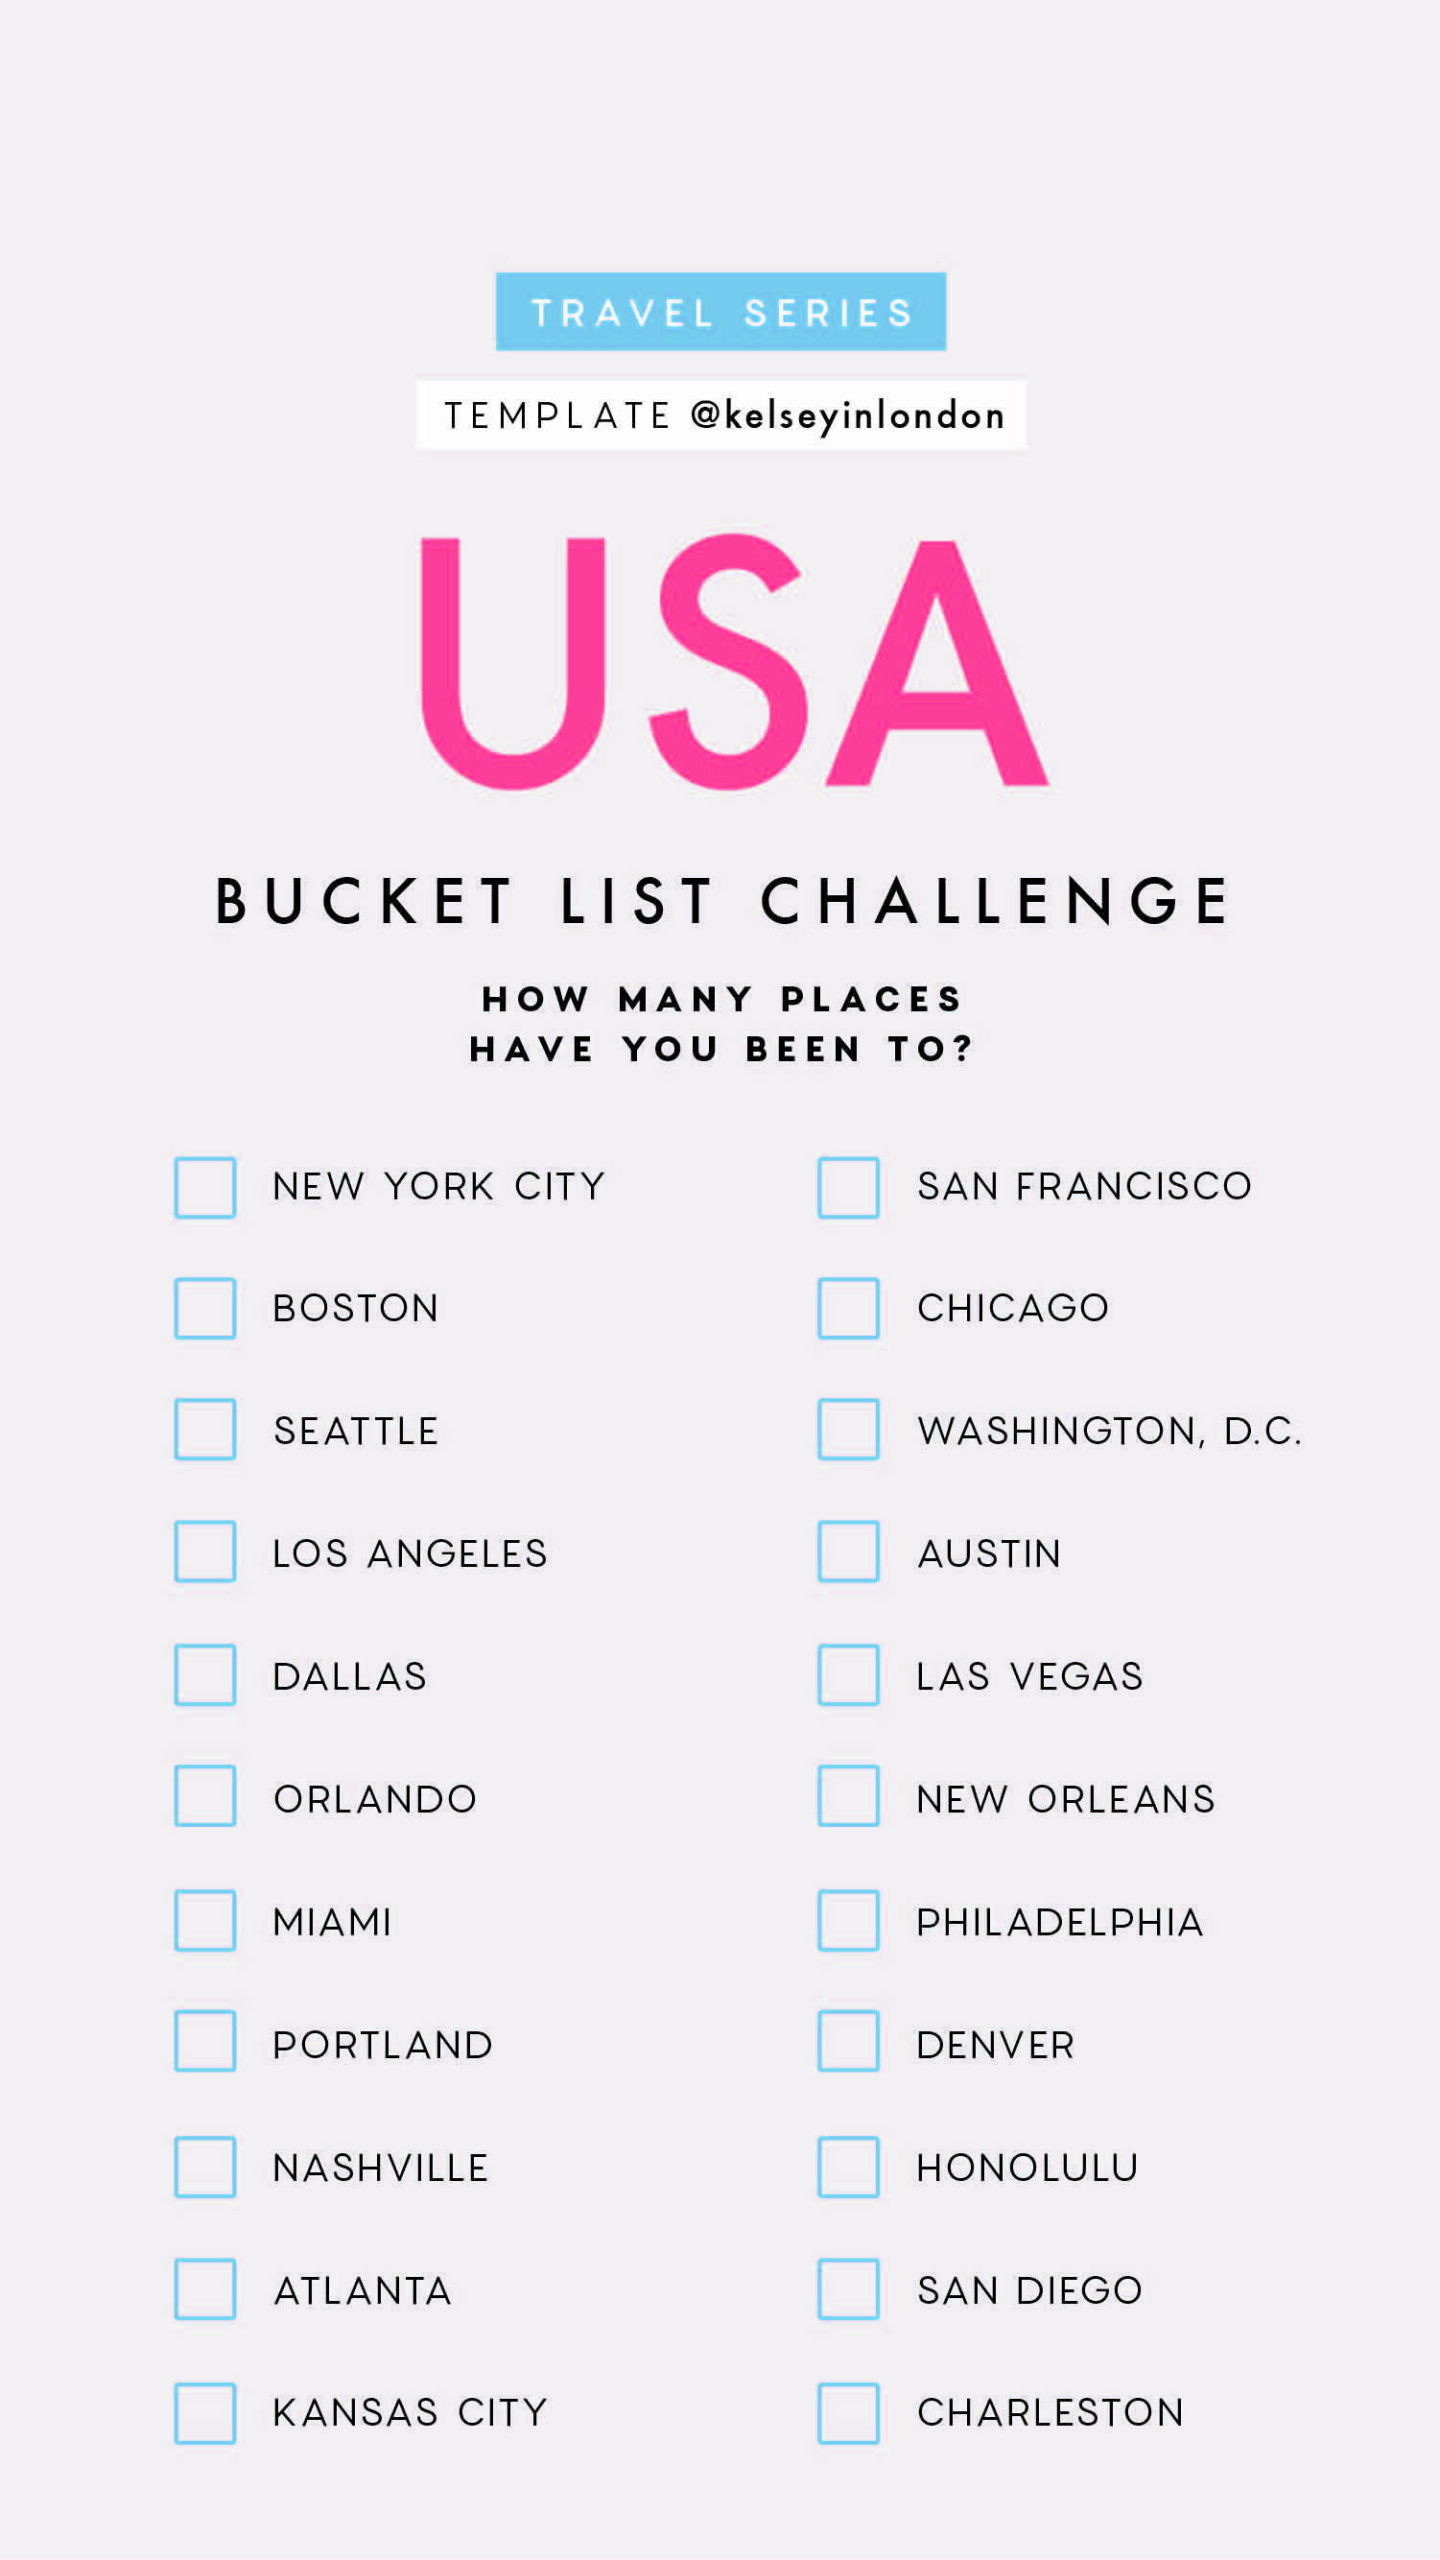 Top things to do in United States Bucket list Instagram Story Template kelseyinlondon Kelsey Heinrichs What to do in United States Where to go in United States top places in United States